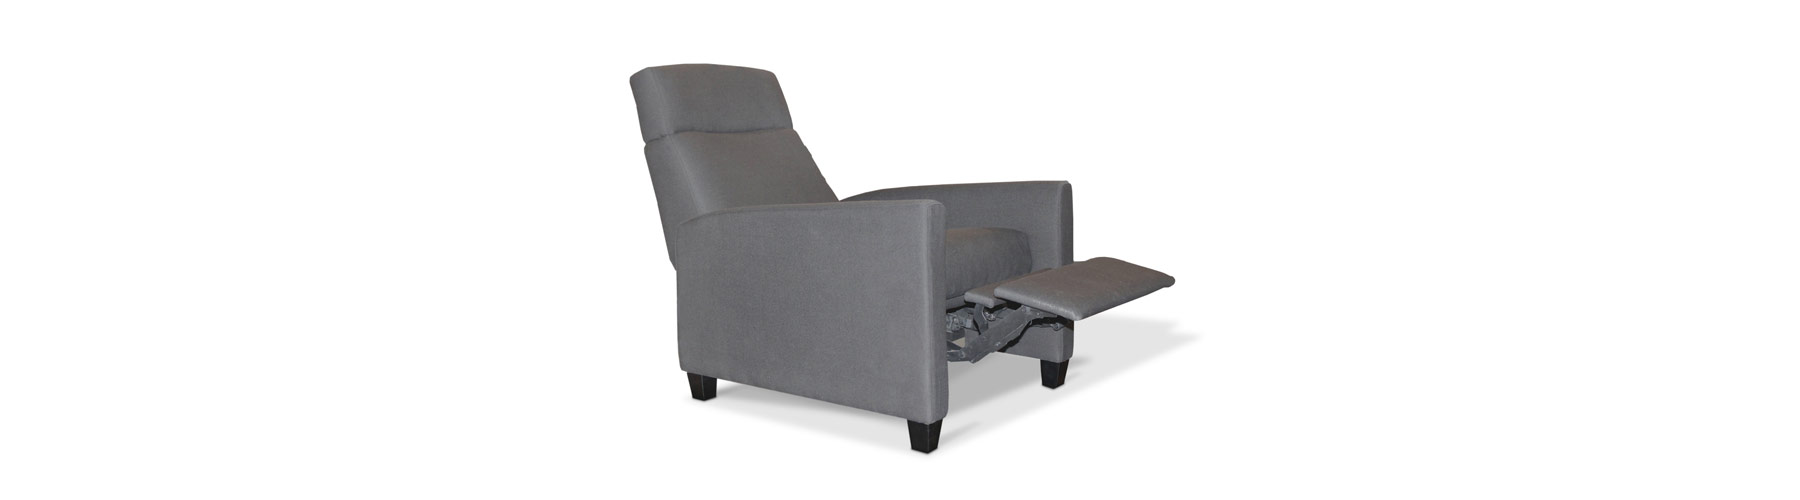 Josephine - Fauteuil William